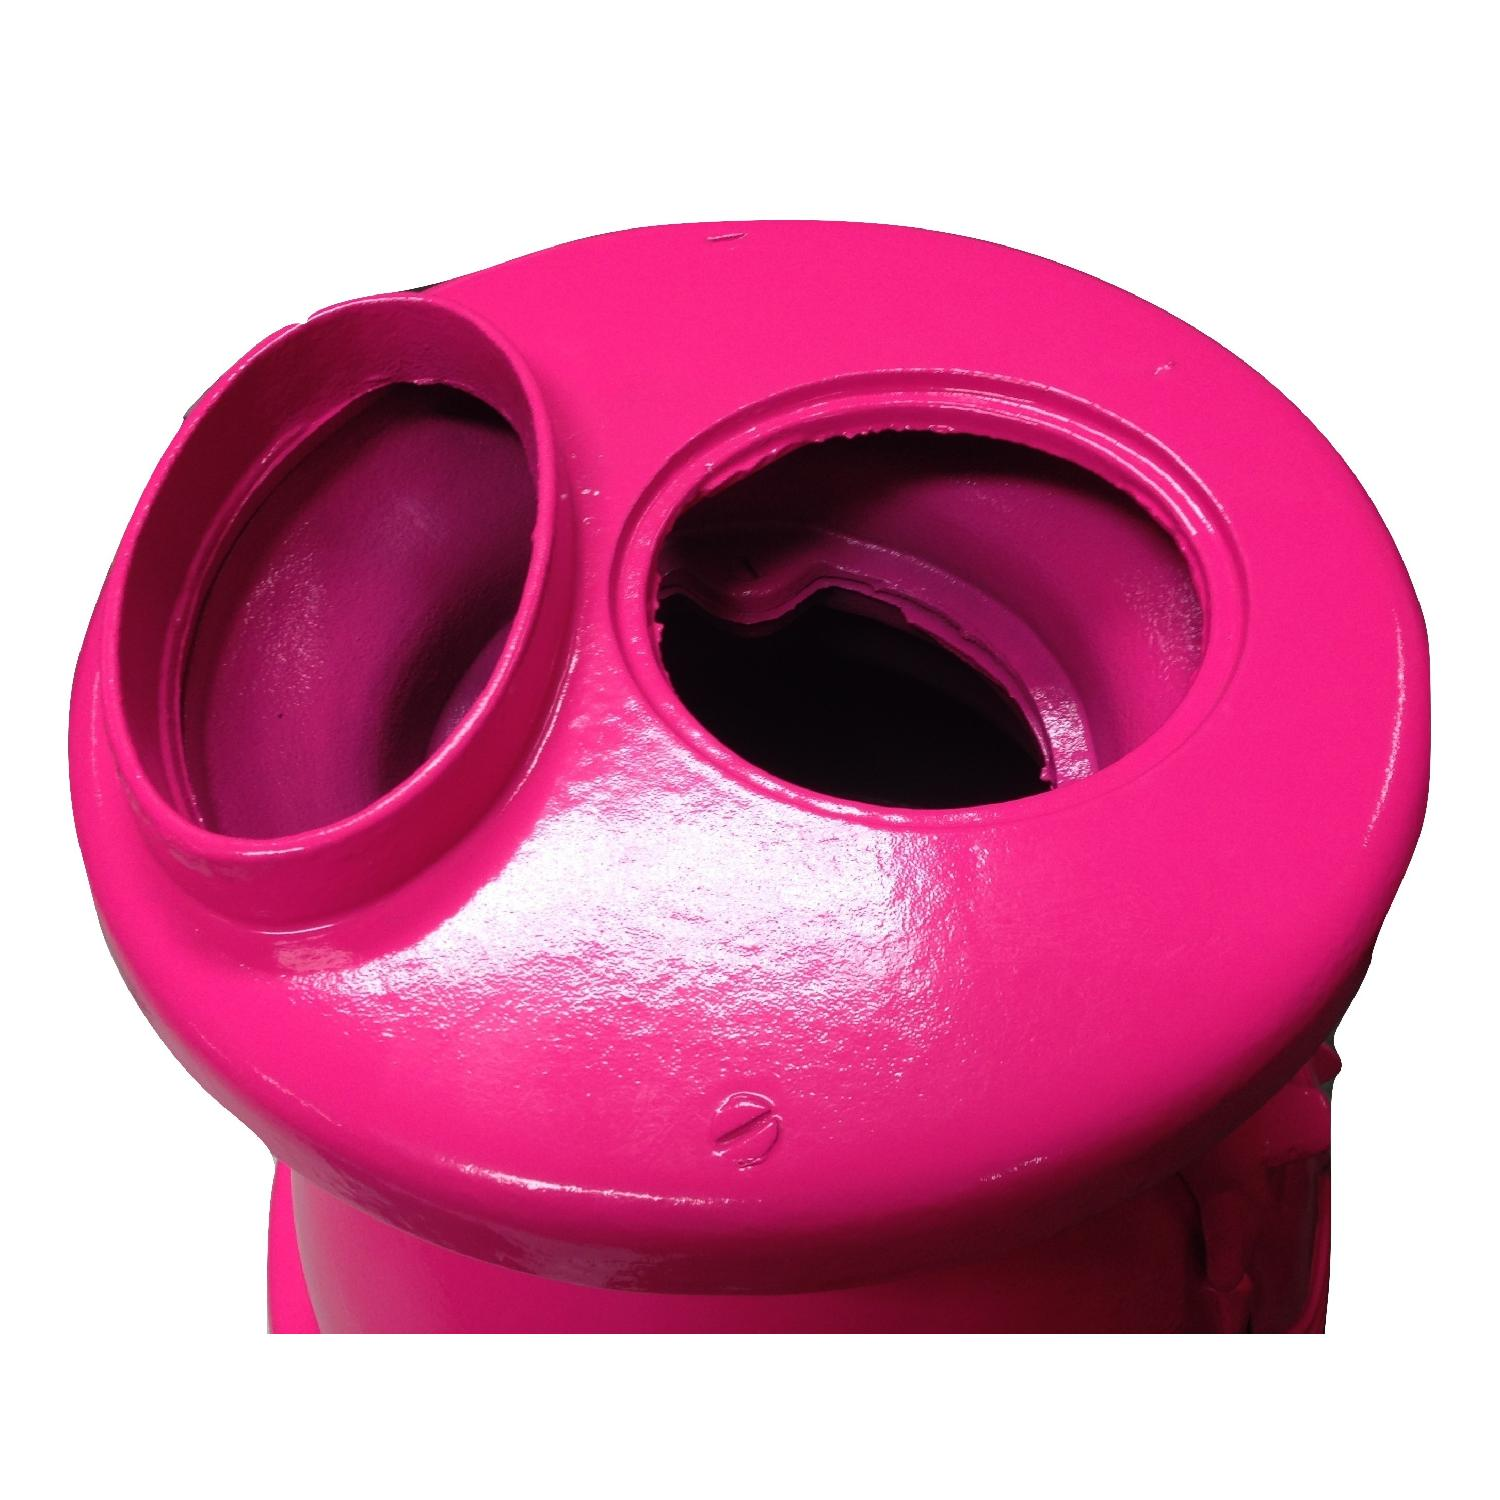 Hot Pink Pot Belly Stove-2